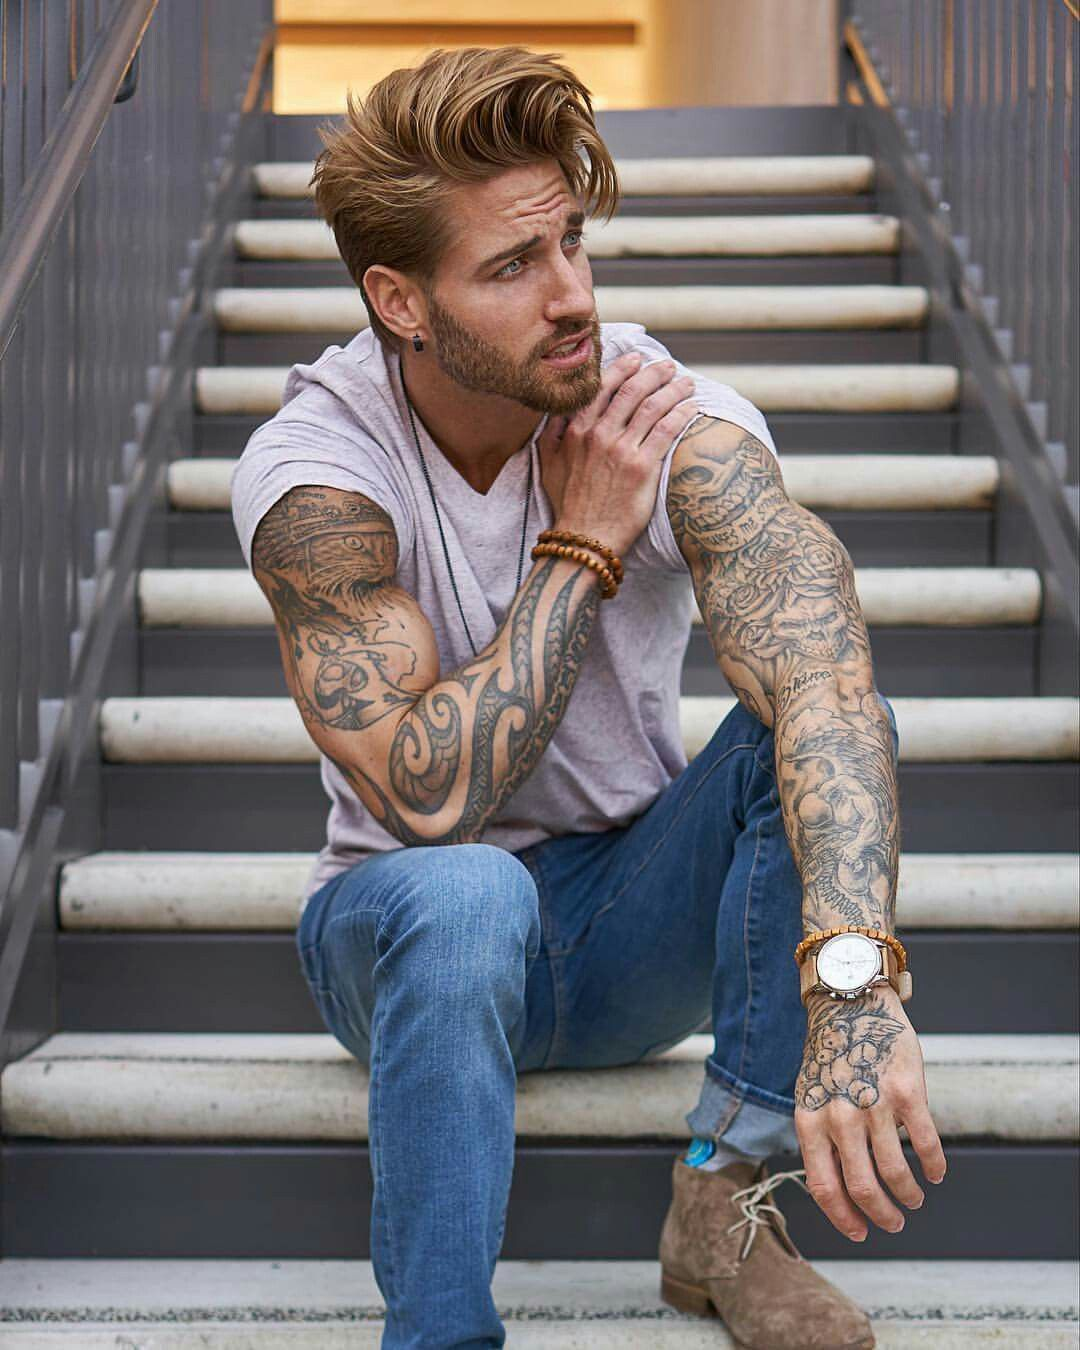 Diy haircut men pin by jo pollock on men with tattoos  pinterest  tattoo